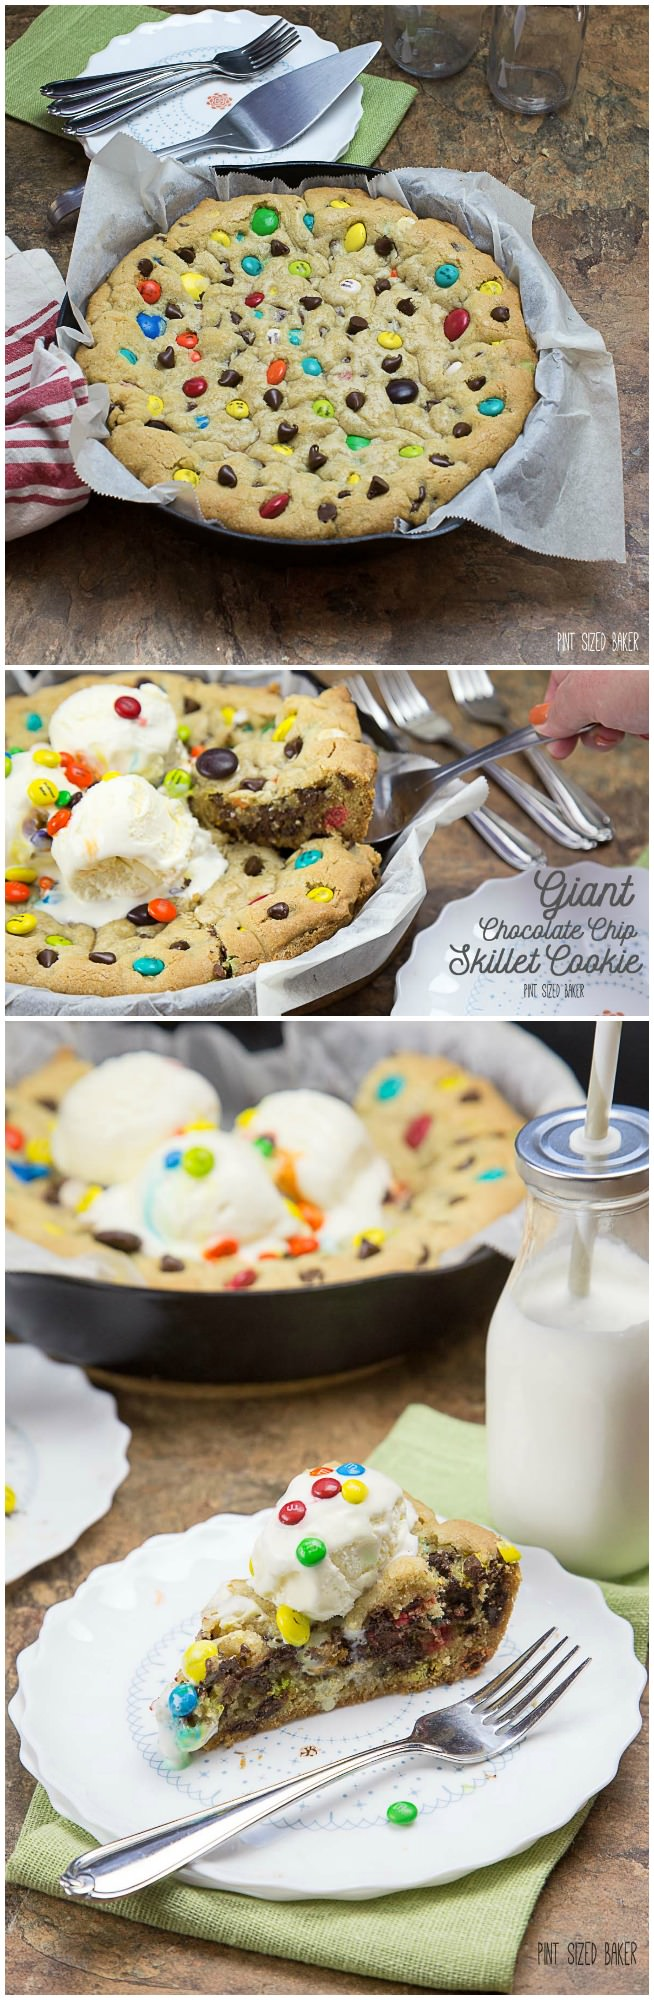 Everyone loves a chocolate chip cookie, now they can enjoy a Giant Chocolate Chip Skillet Cookie topped with ice cream.